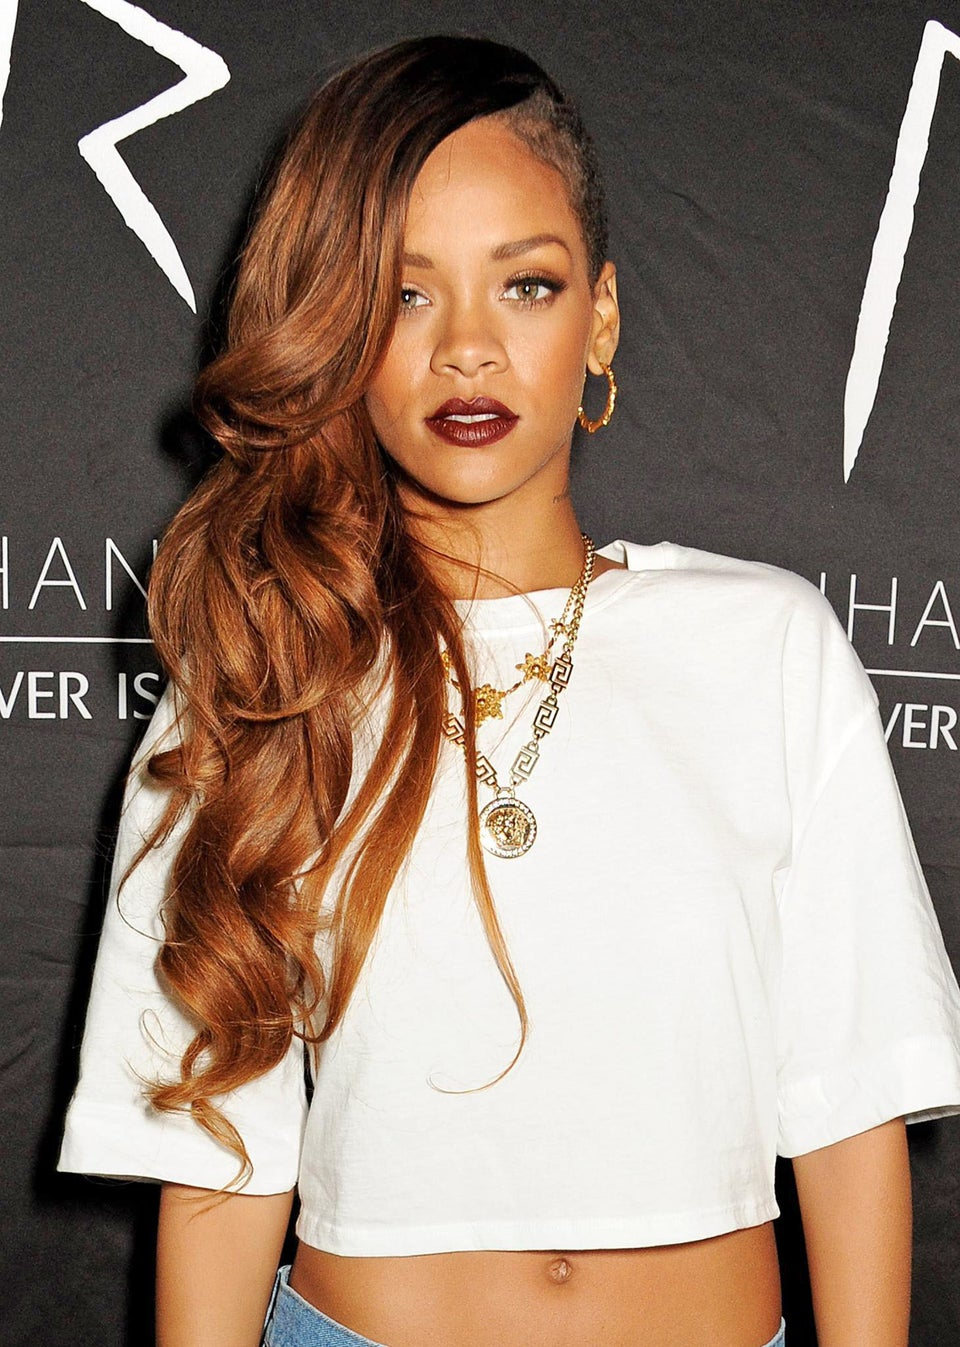 Rihanna Gives $5,000 to Chicago High School